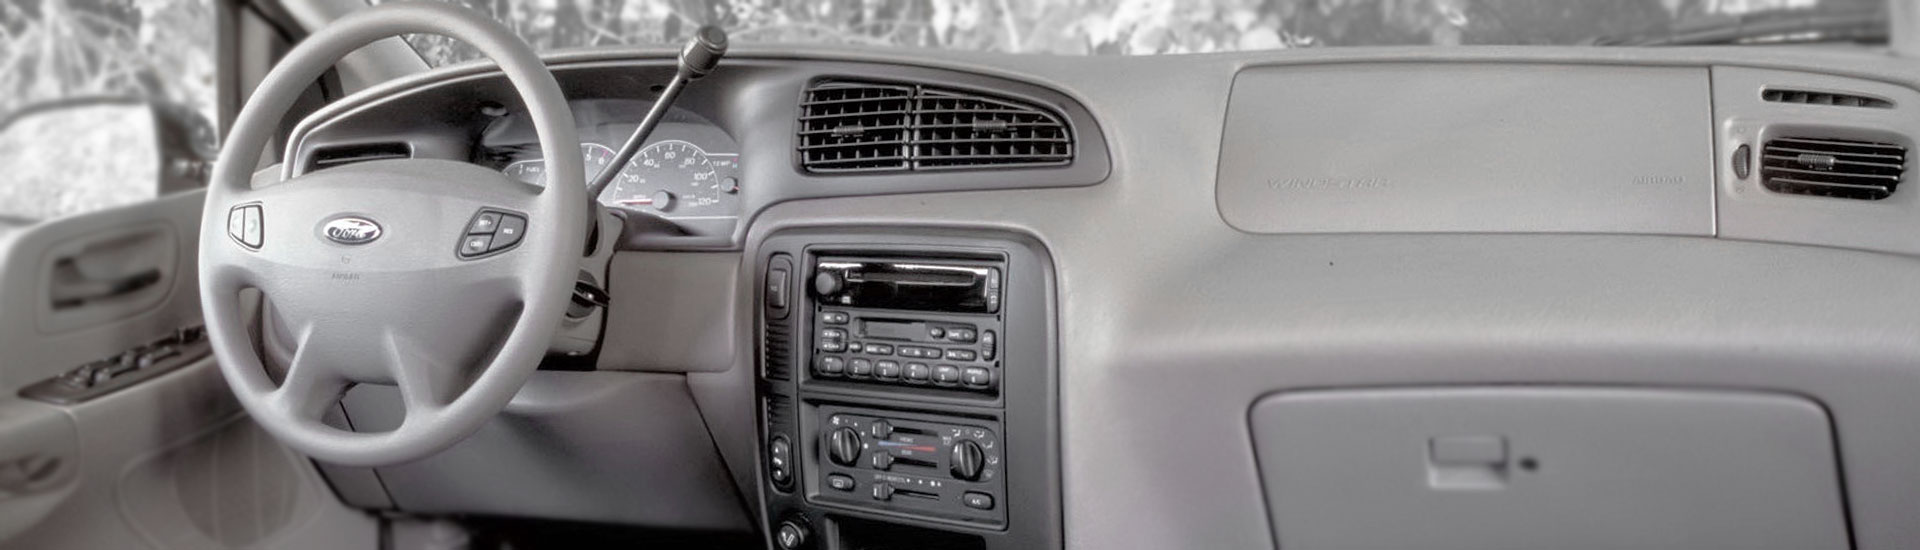 Ford Windstar Custom Dash Kits